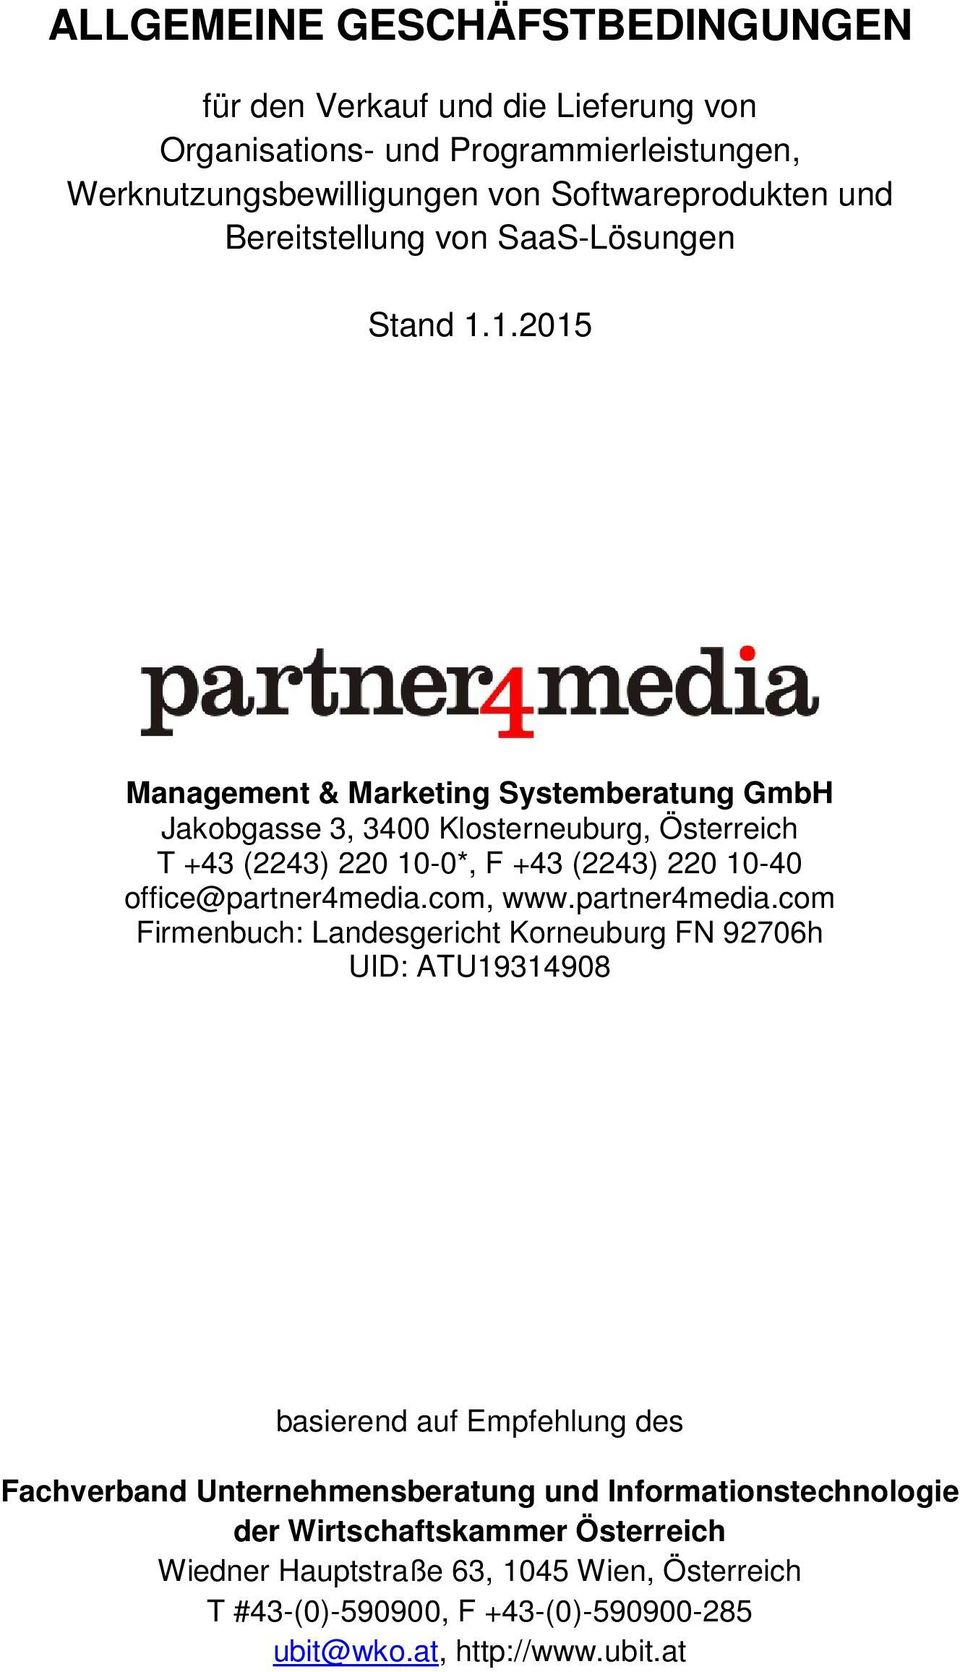 1.2015 Management & Marketing Systemberatung GmbH Jakobgasse 3, 3400 Klosterneuburg, Österreich T +43 (2243) 220 10-0*, F +43 (2243) 220 10-40 office@partner4media.com, www.